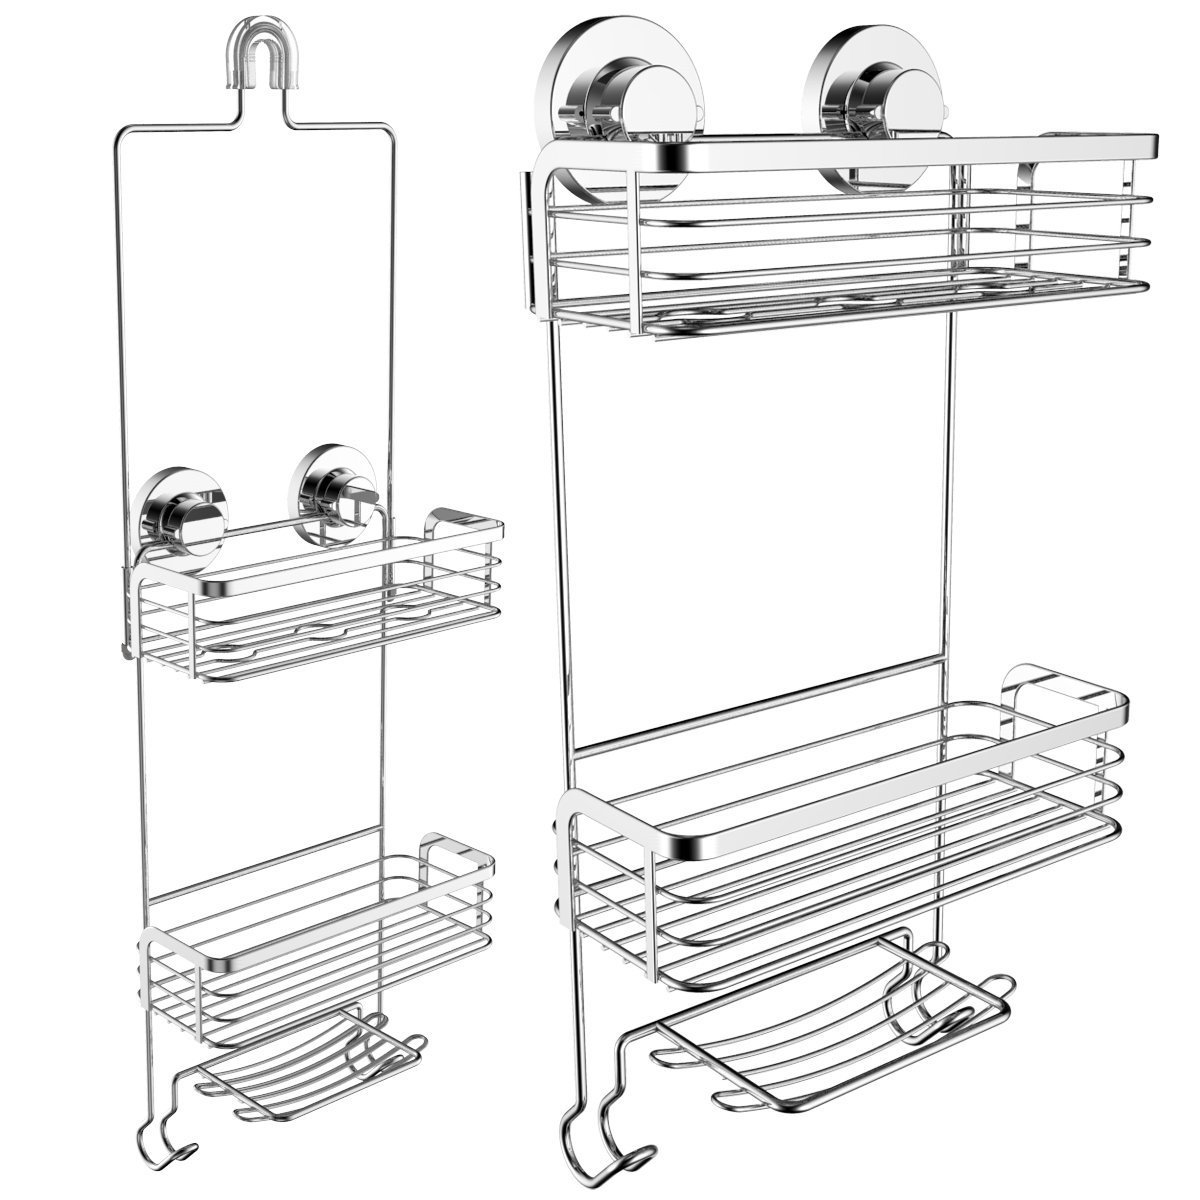 Vidan Home Solutions Dual Installation (Hanging or Mounted) Shower Caddy | Rustproof Stainless Steel | Includes 2 Superior Suction Cups